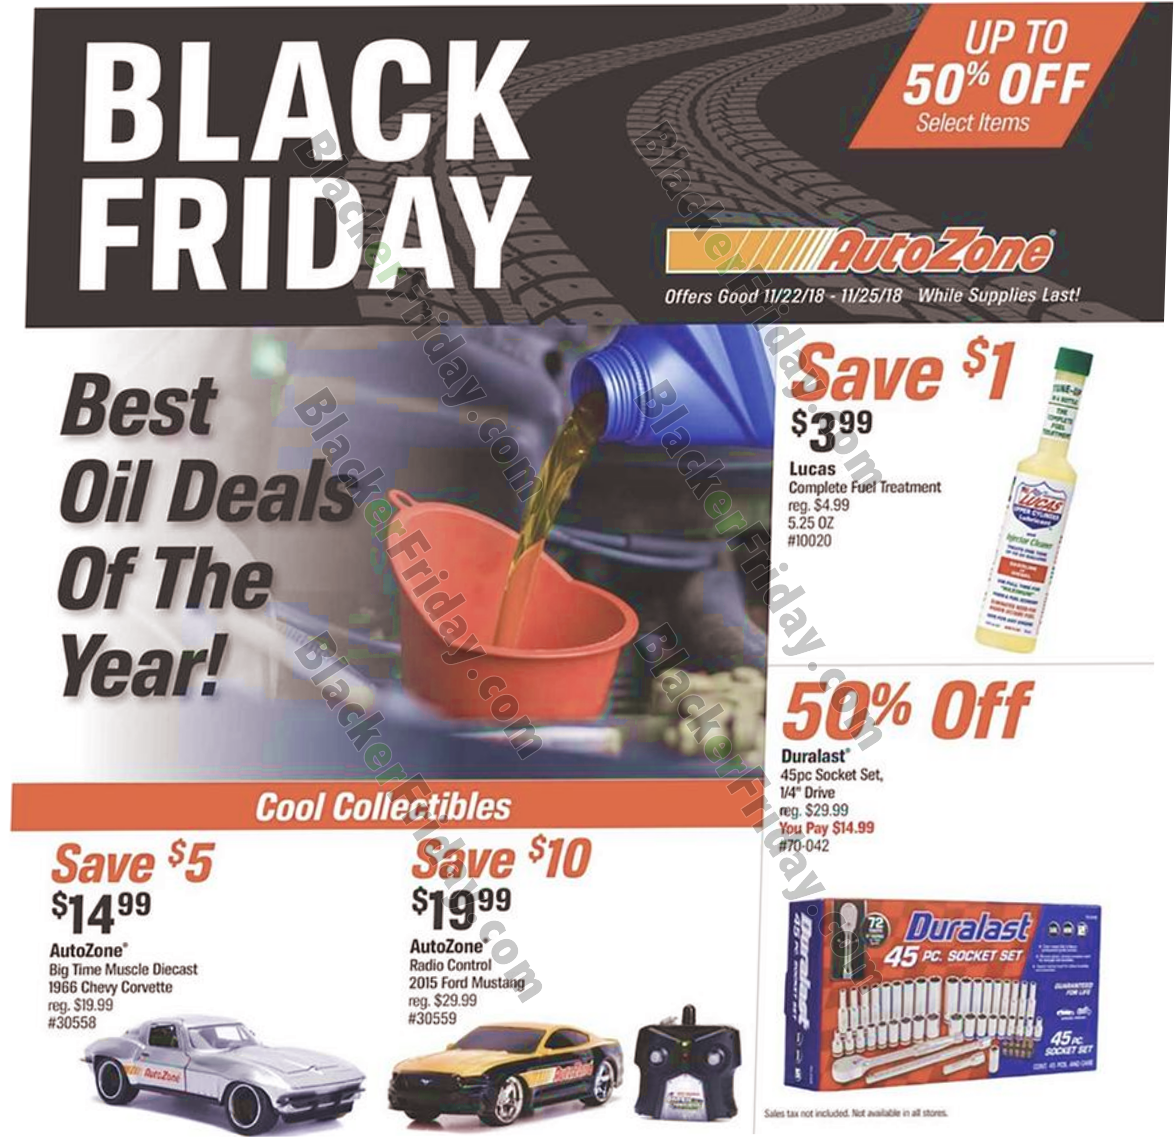 Autozone Black Friday 2020 Sale What To Expect Blacker Friday